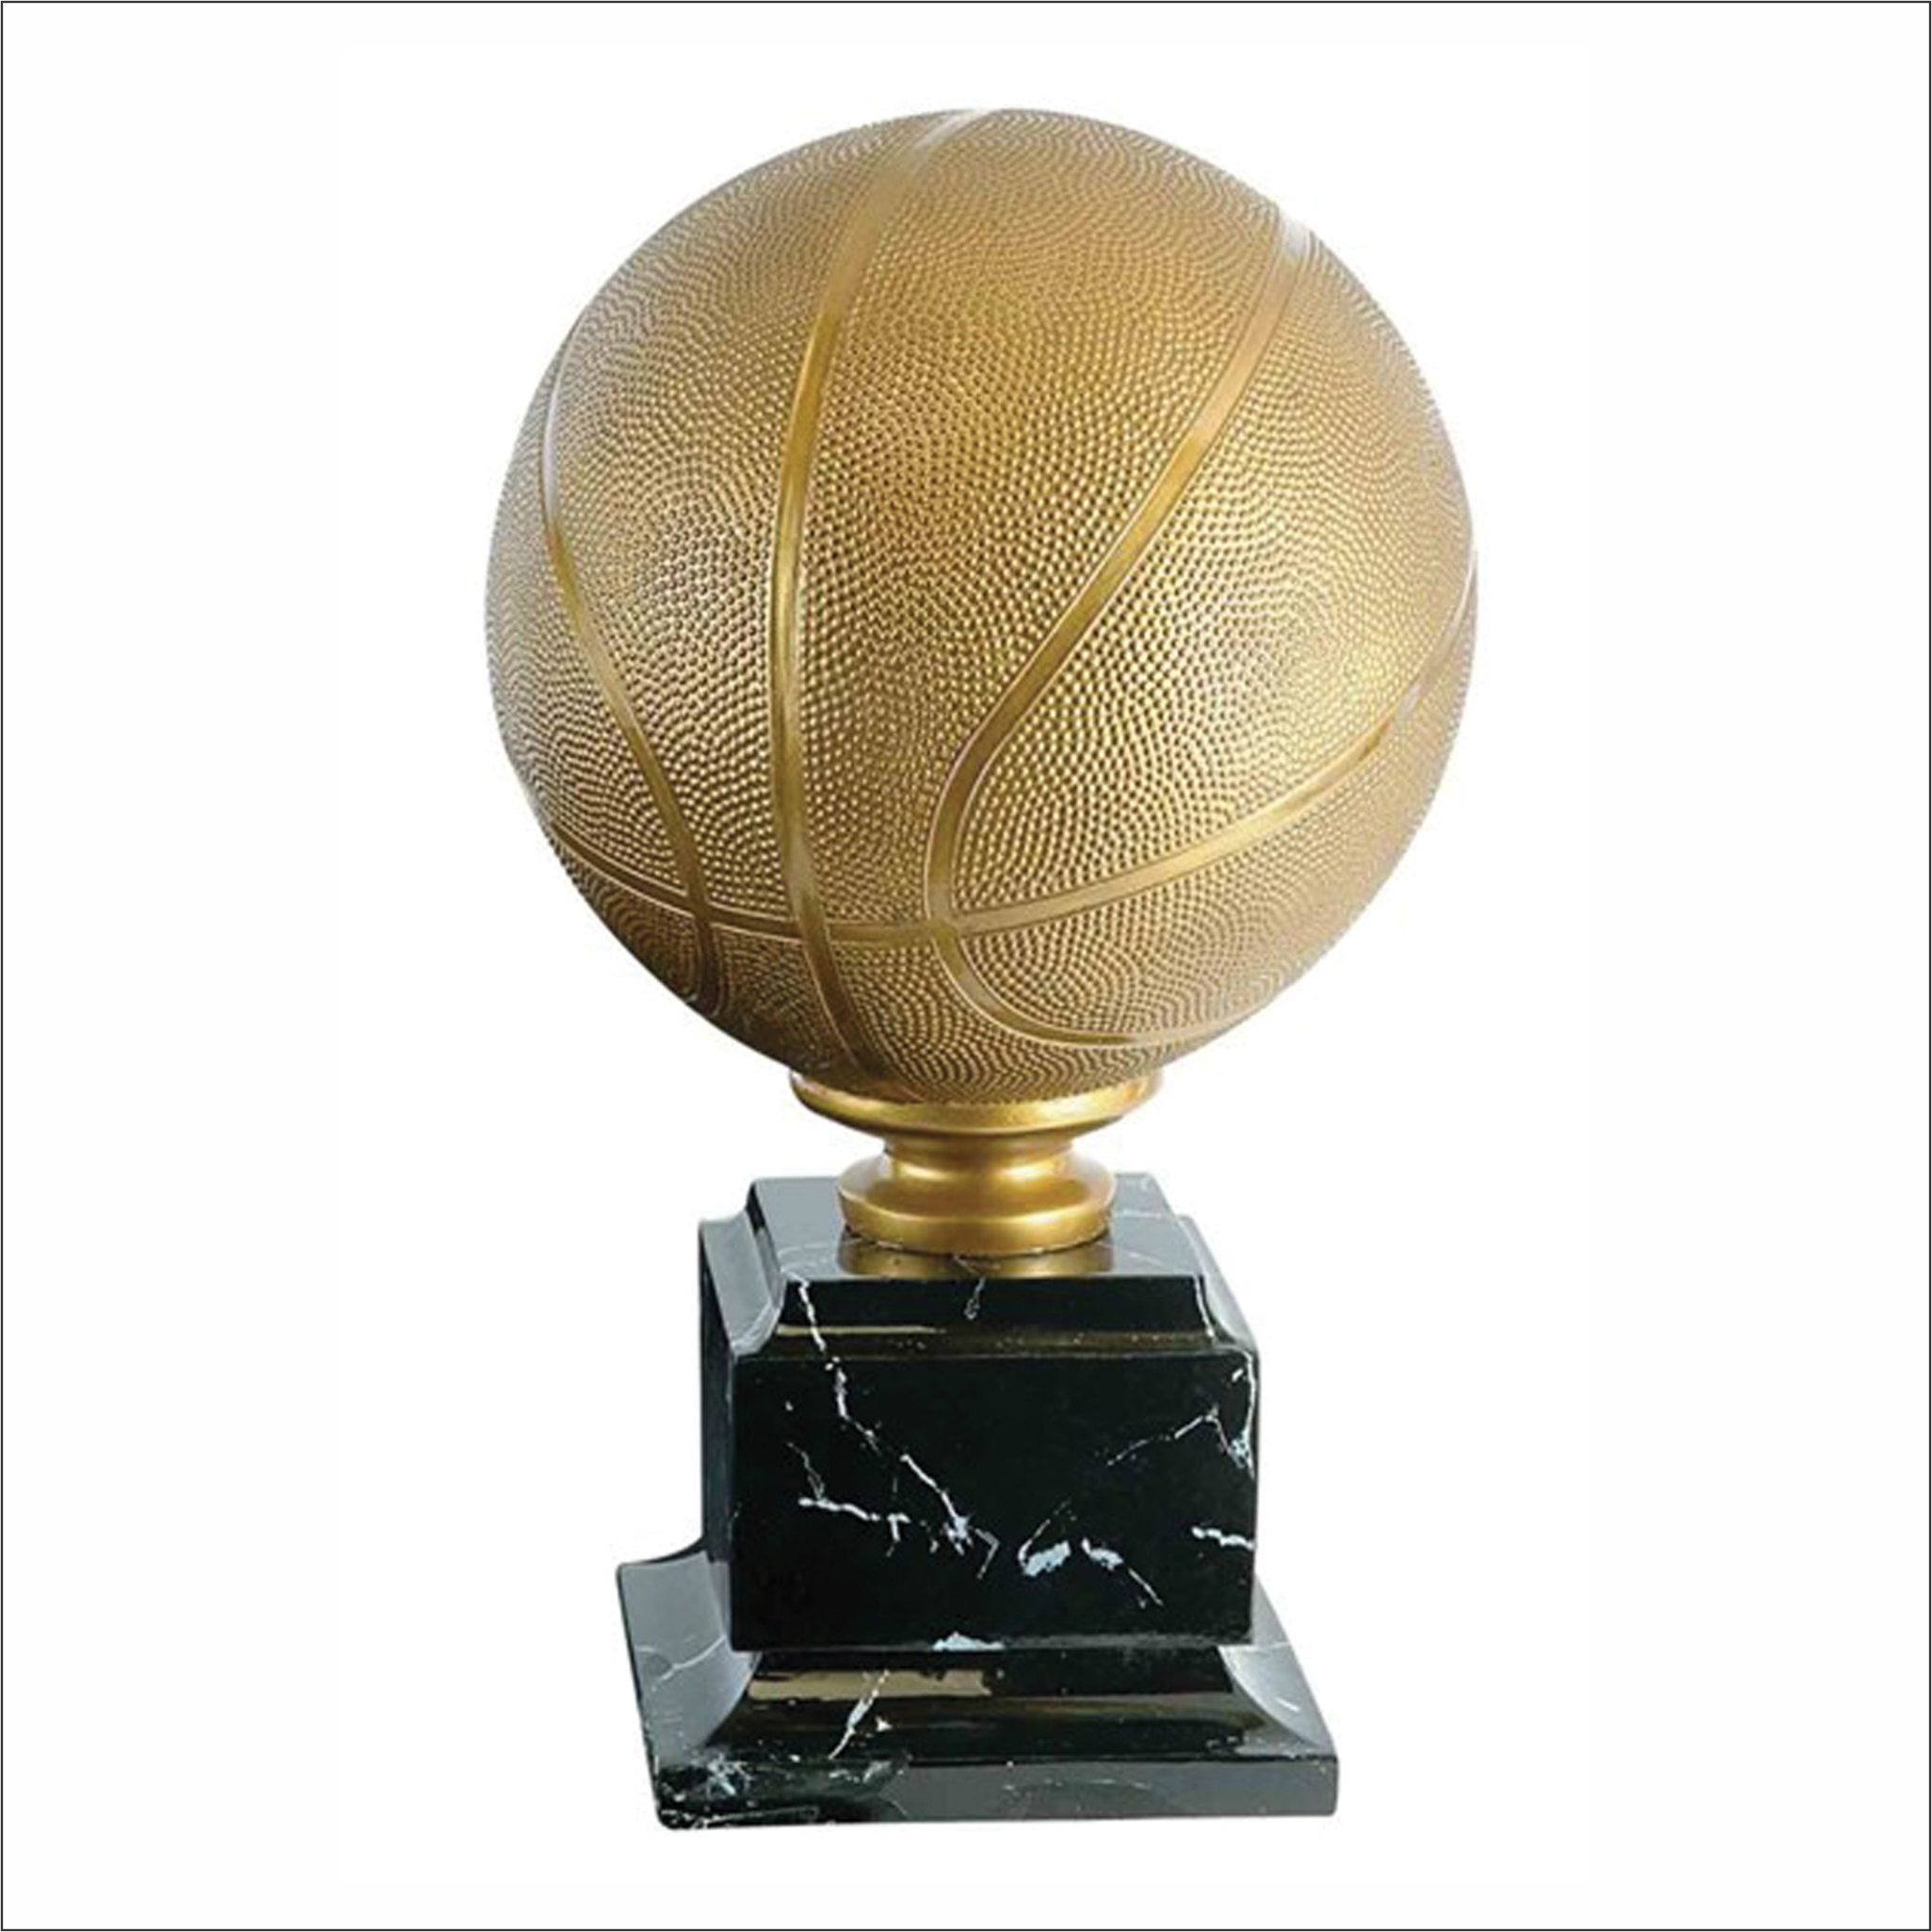 "Basketball 15.25"" trophy - Pro series"